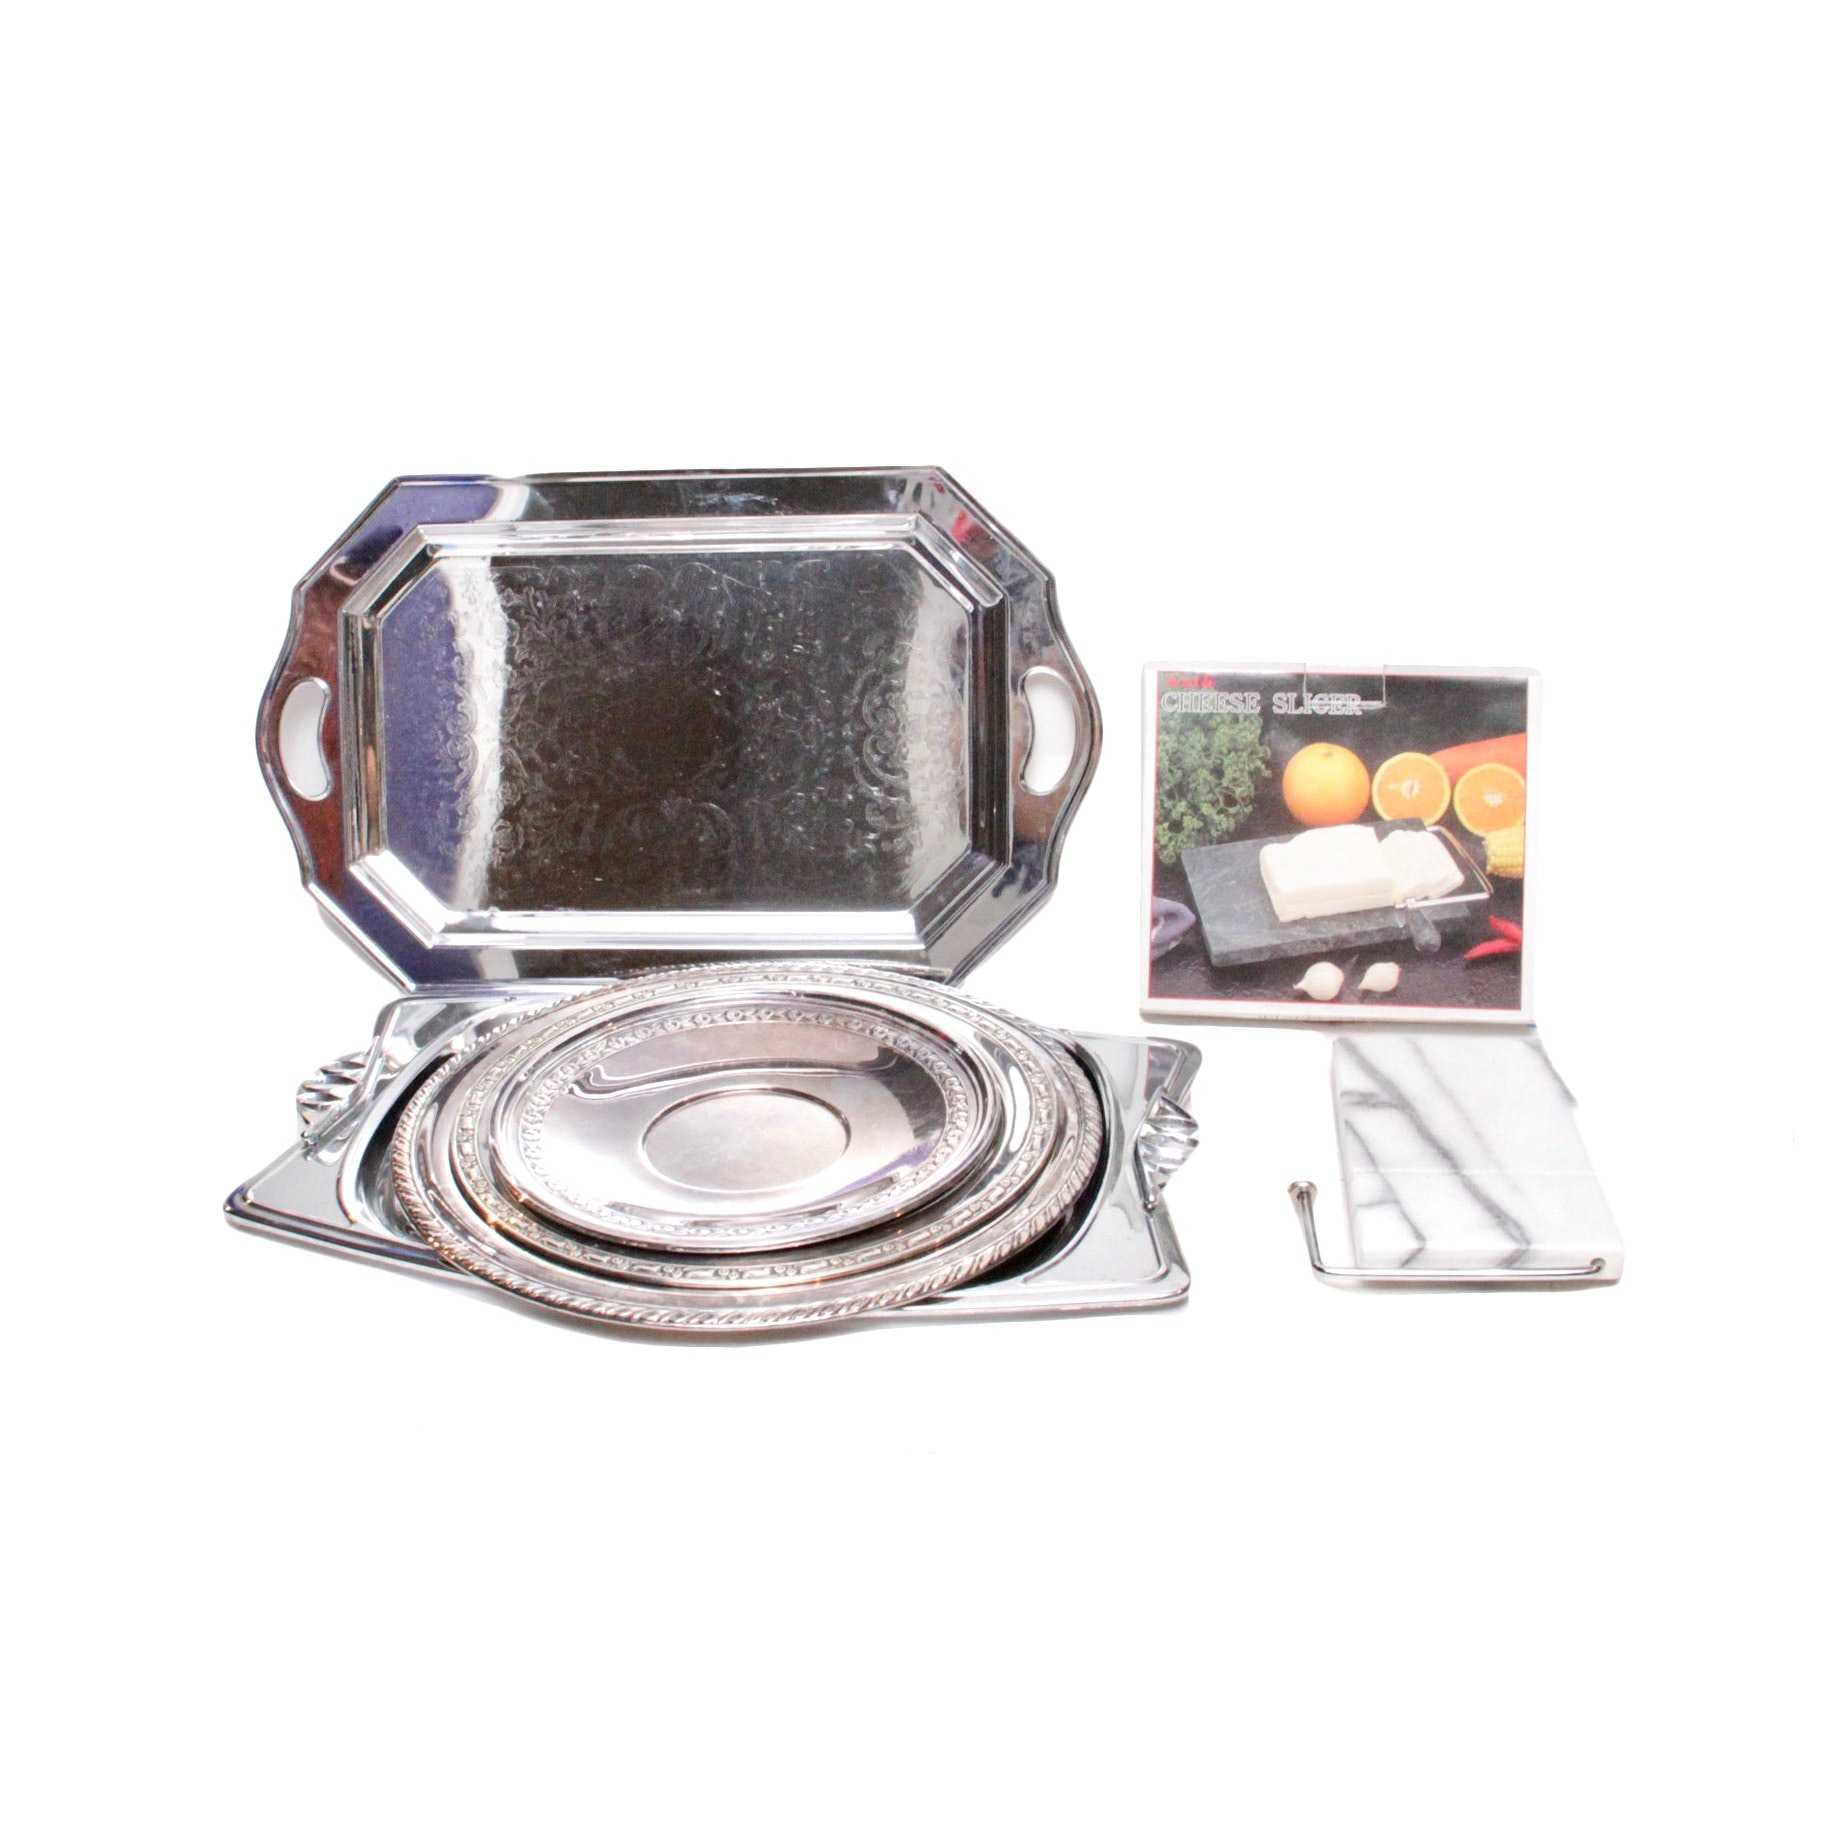 Silver Plated Serving Trays and Marble Cheese Slicer